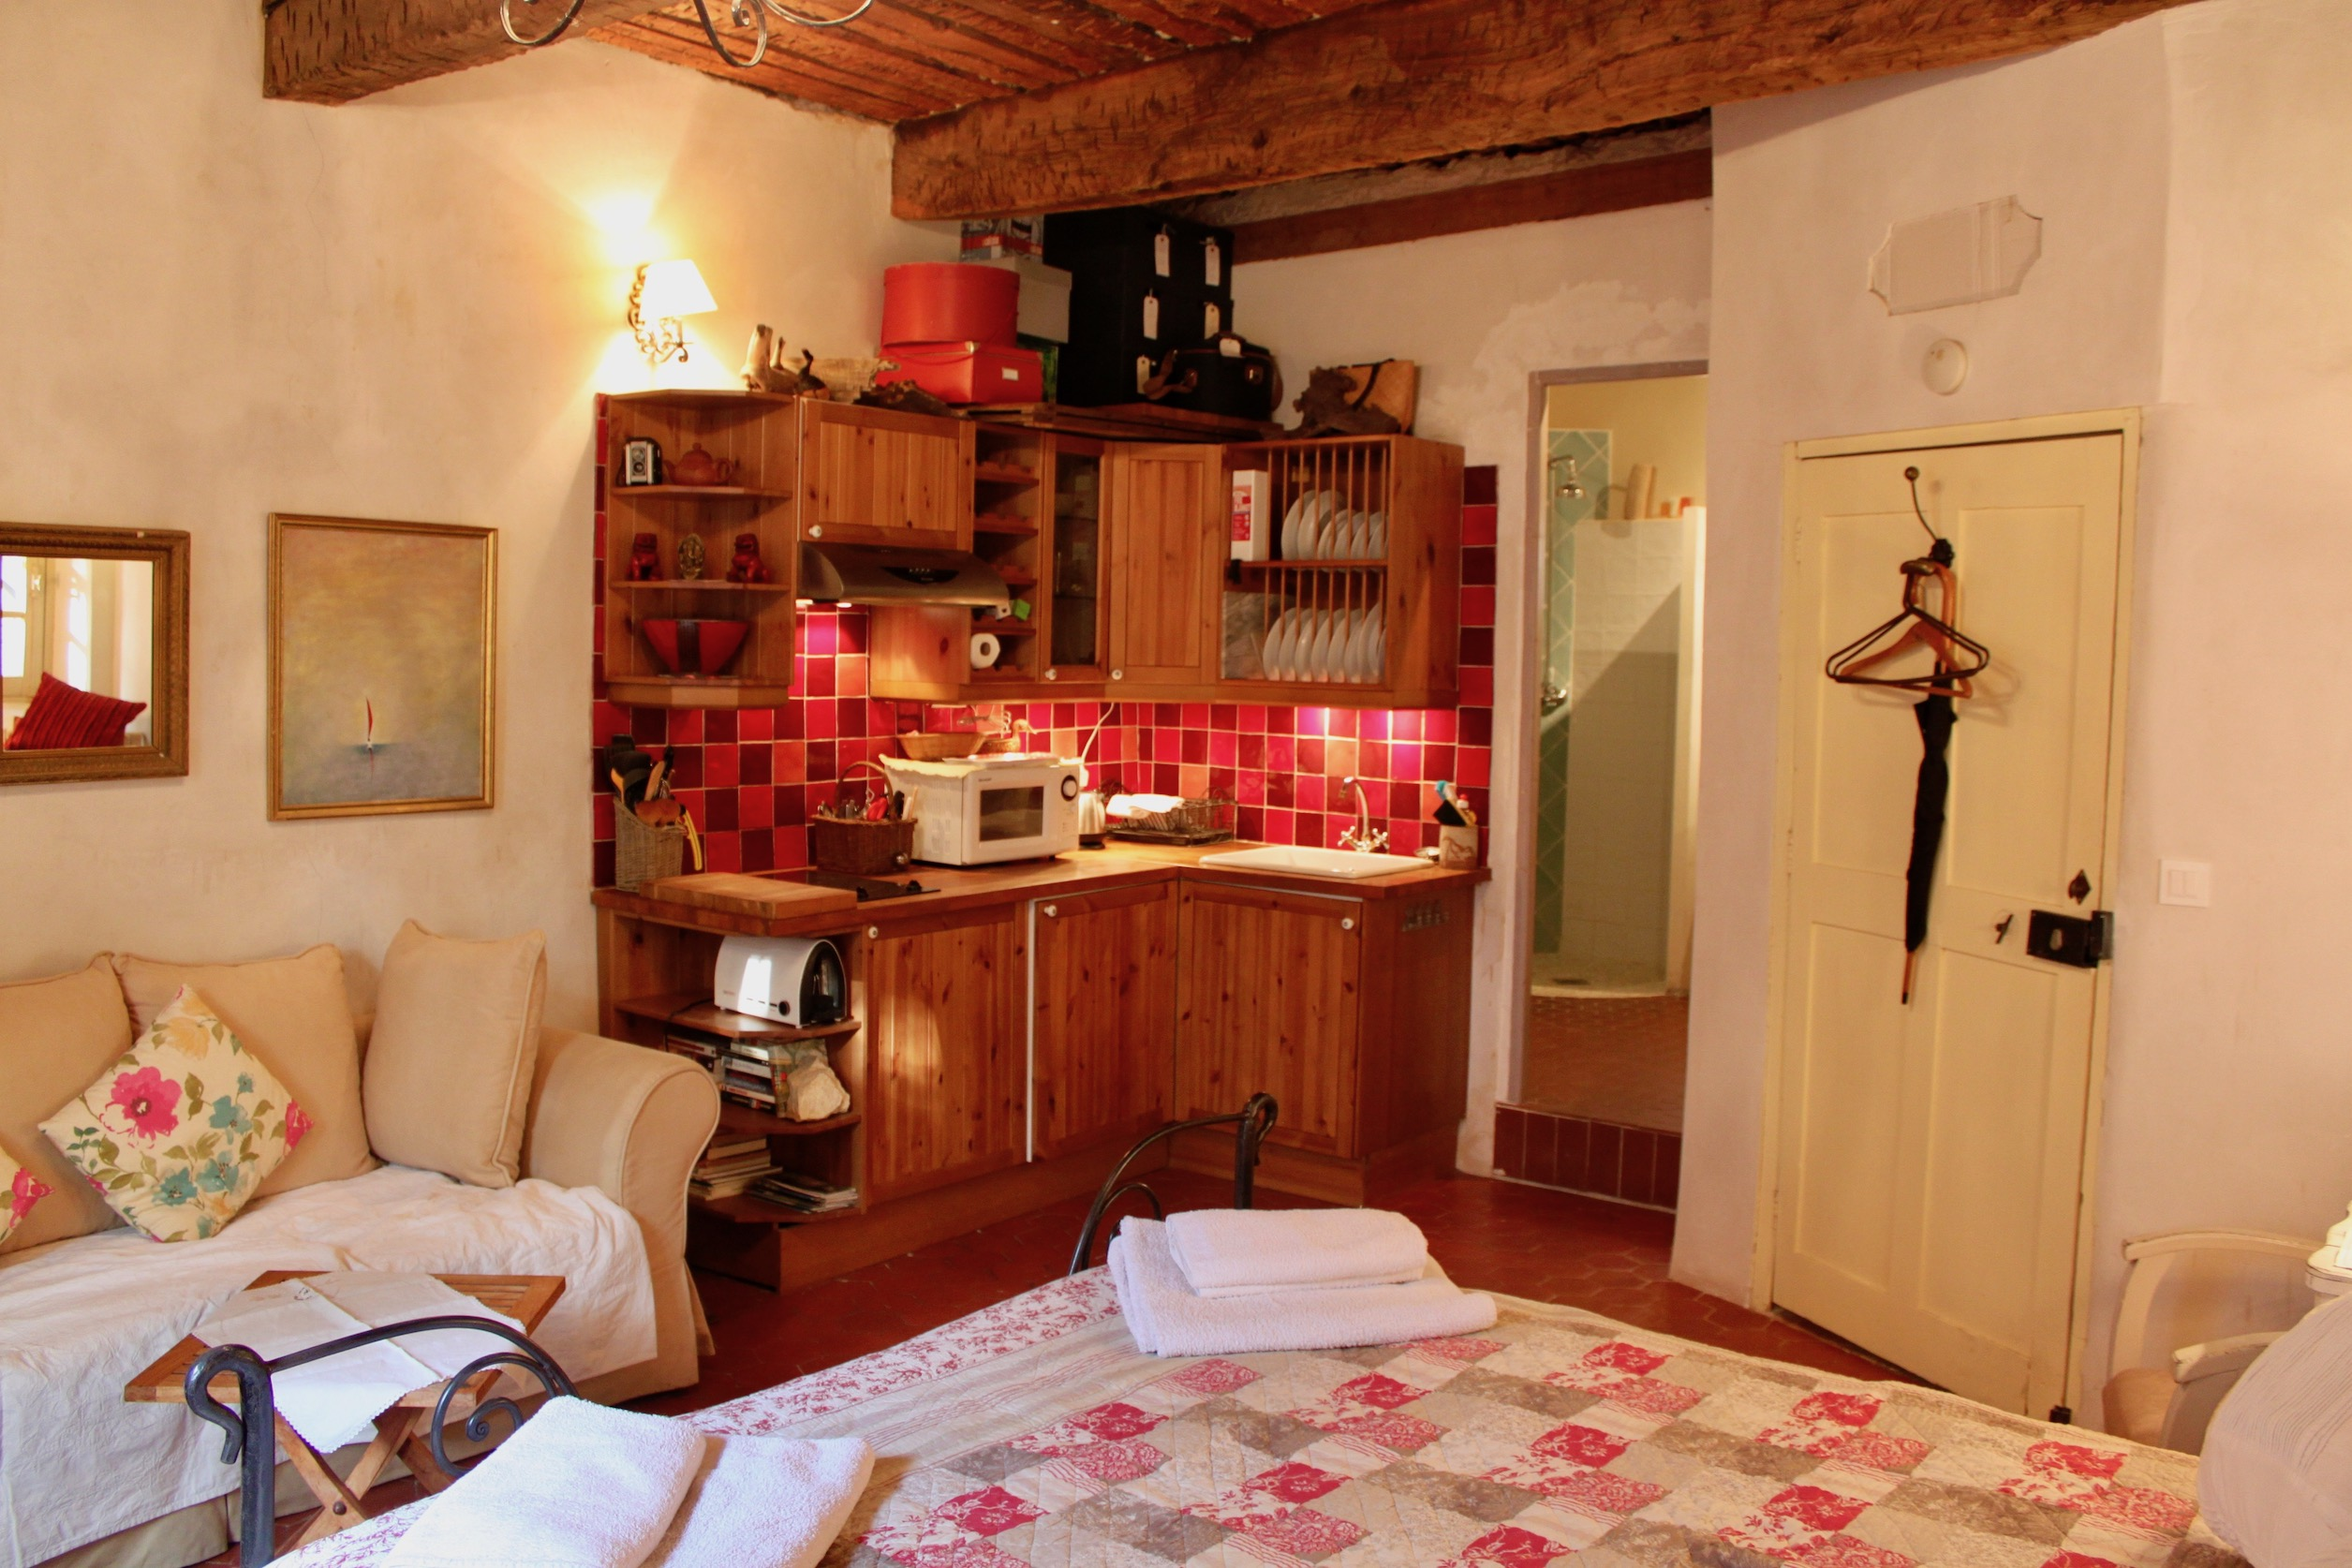 The studio is completely self contained with it's own kitchen and shower room